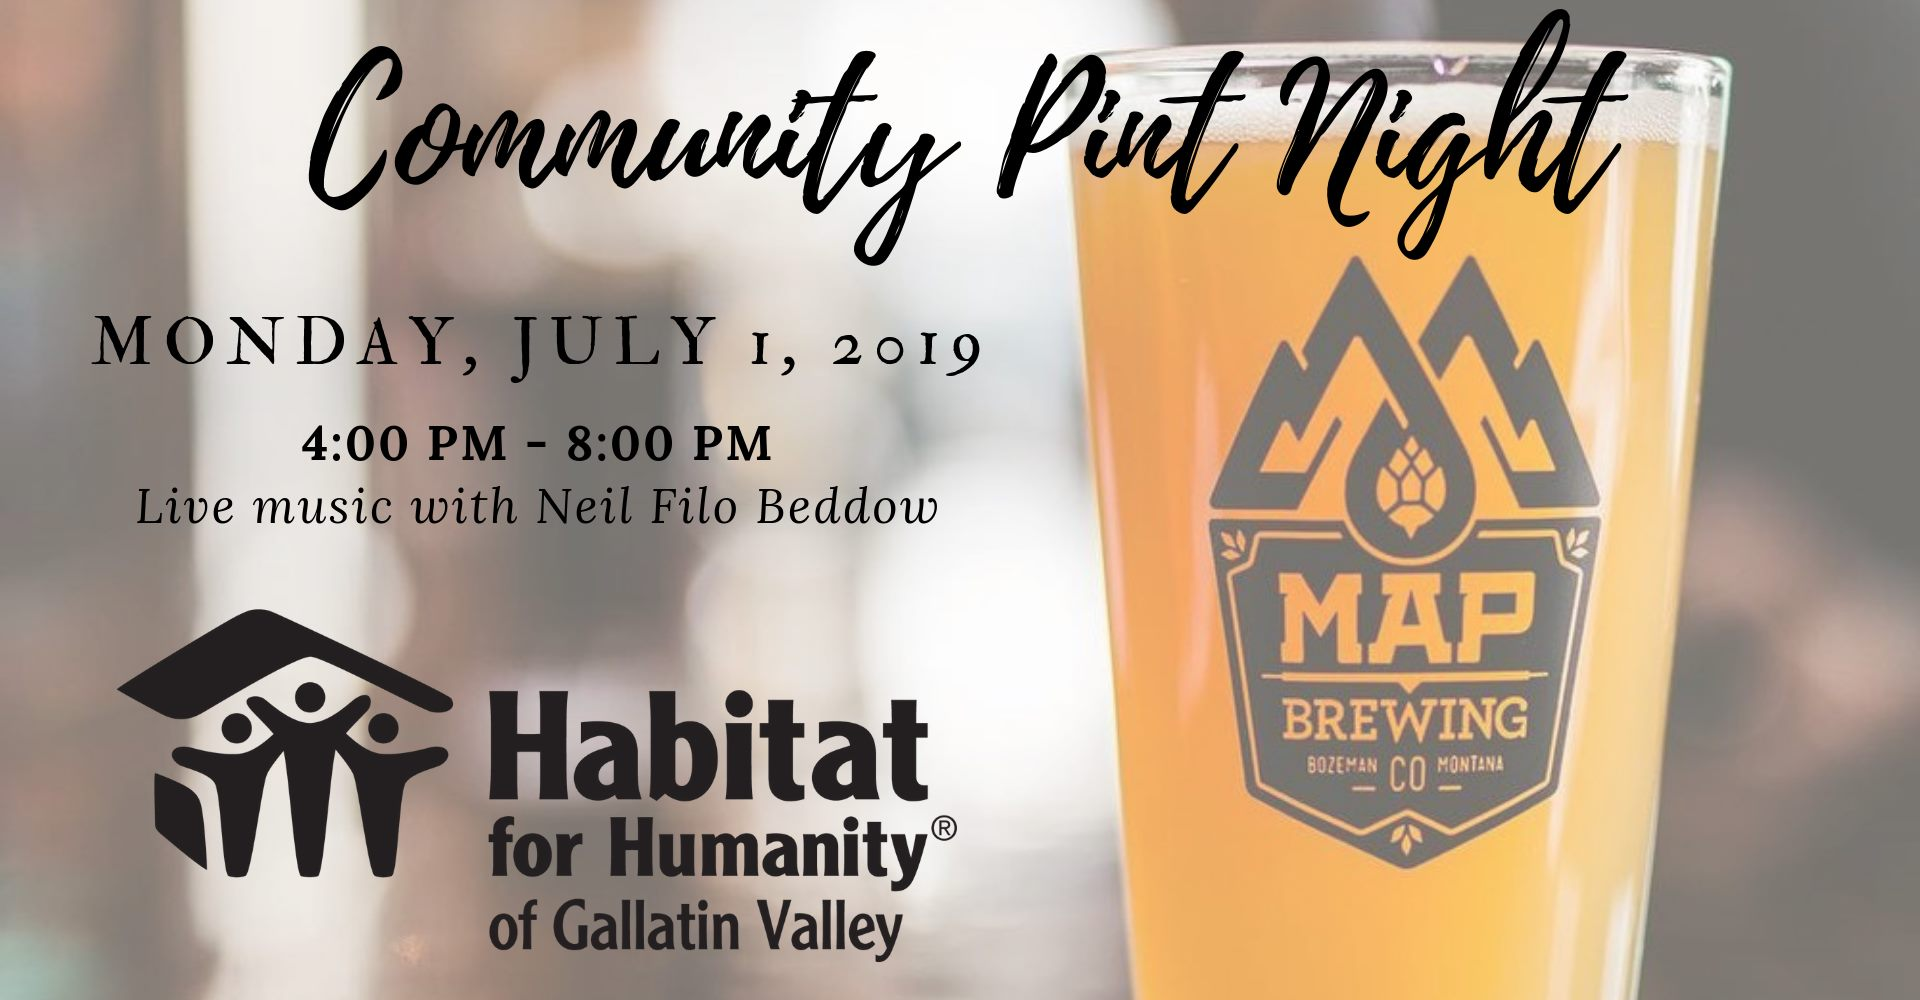 Community Pint Night at Map Brewing